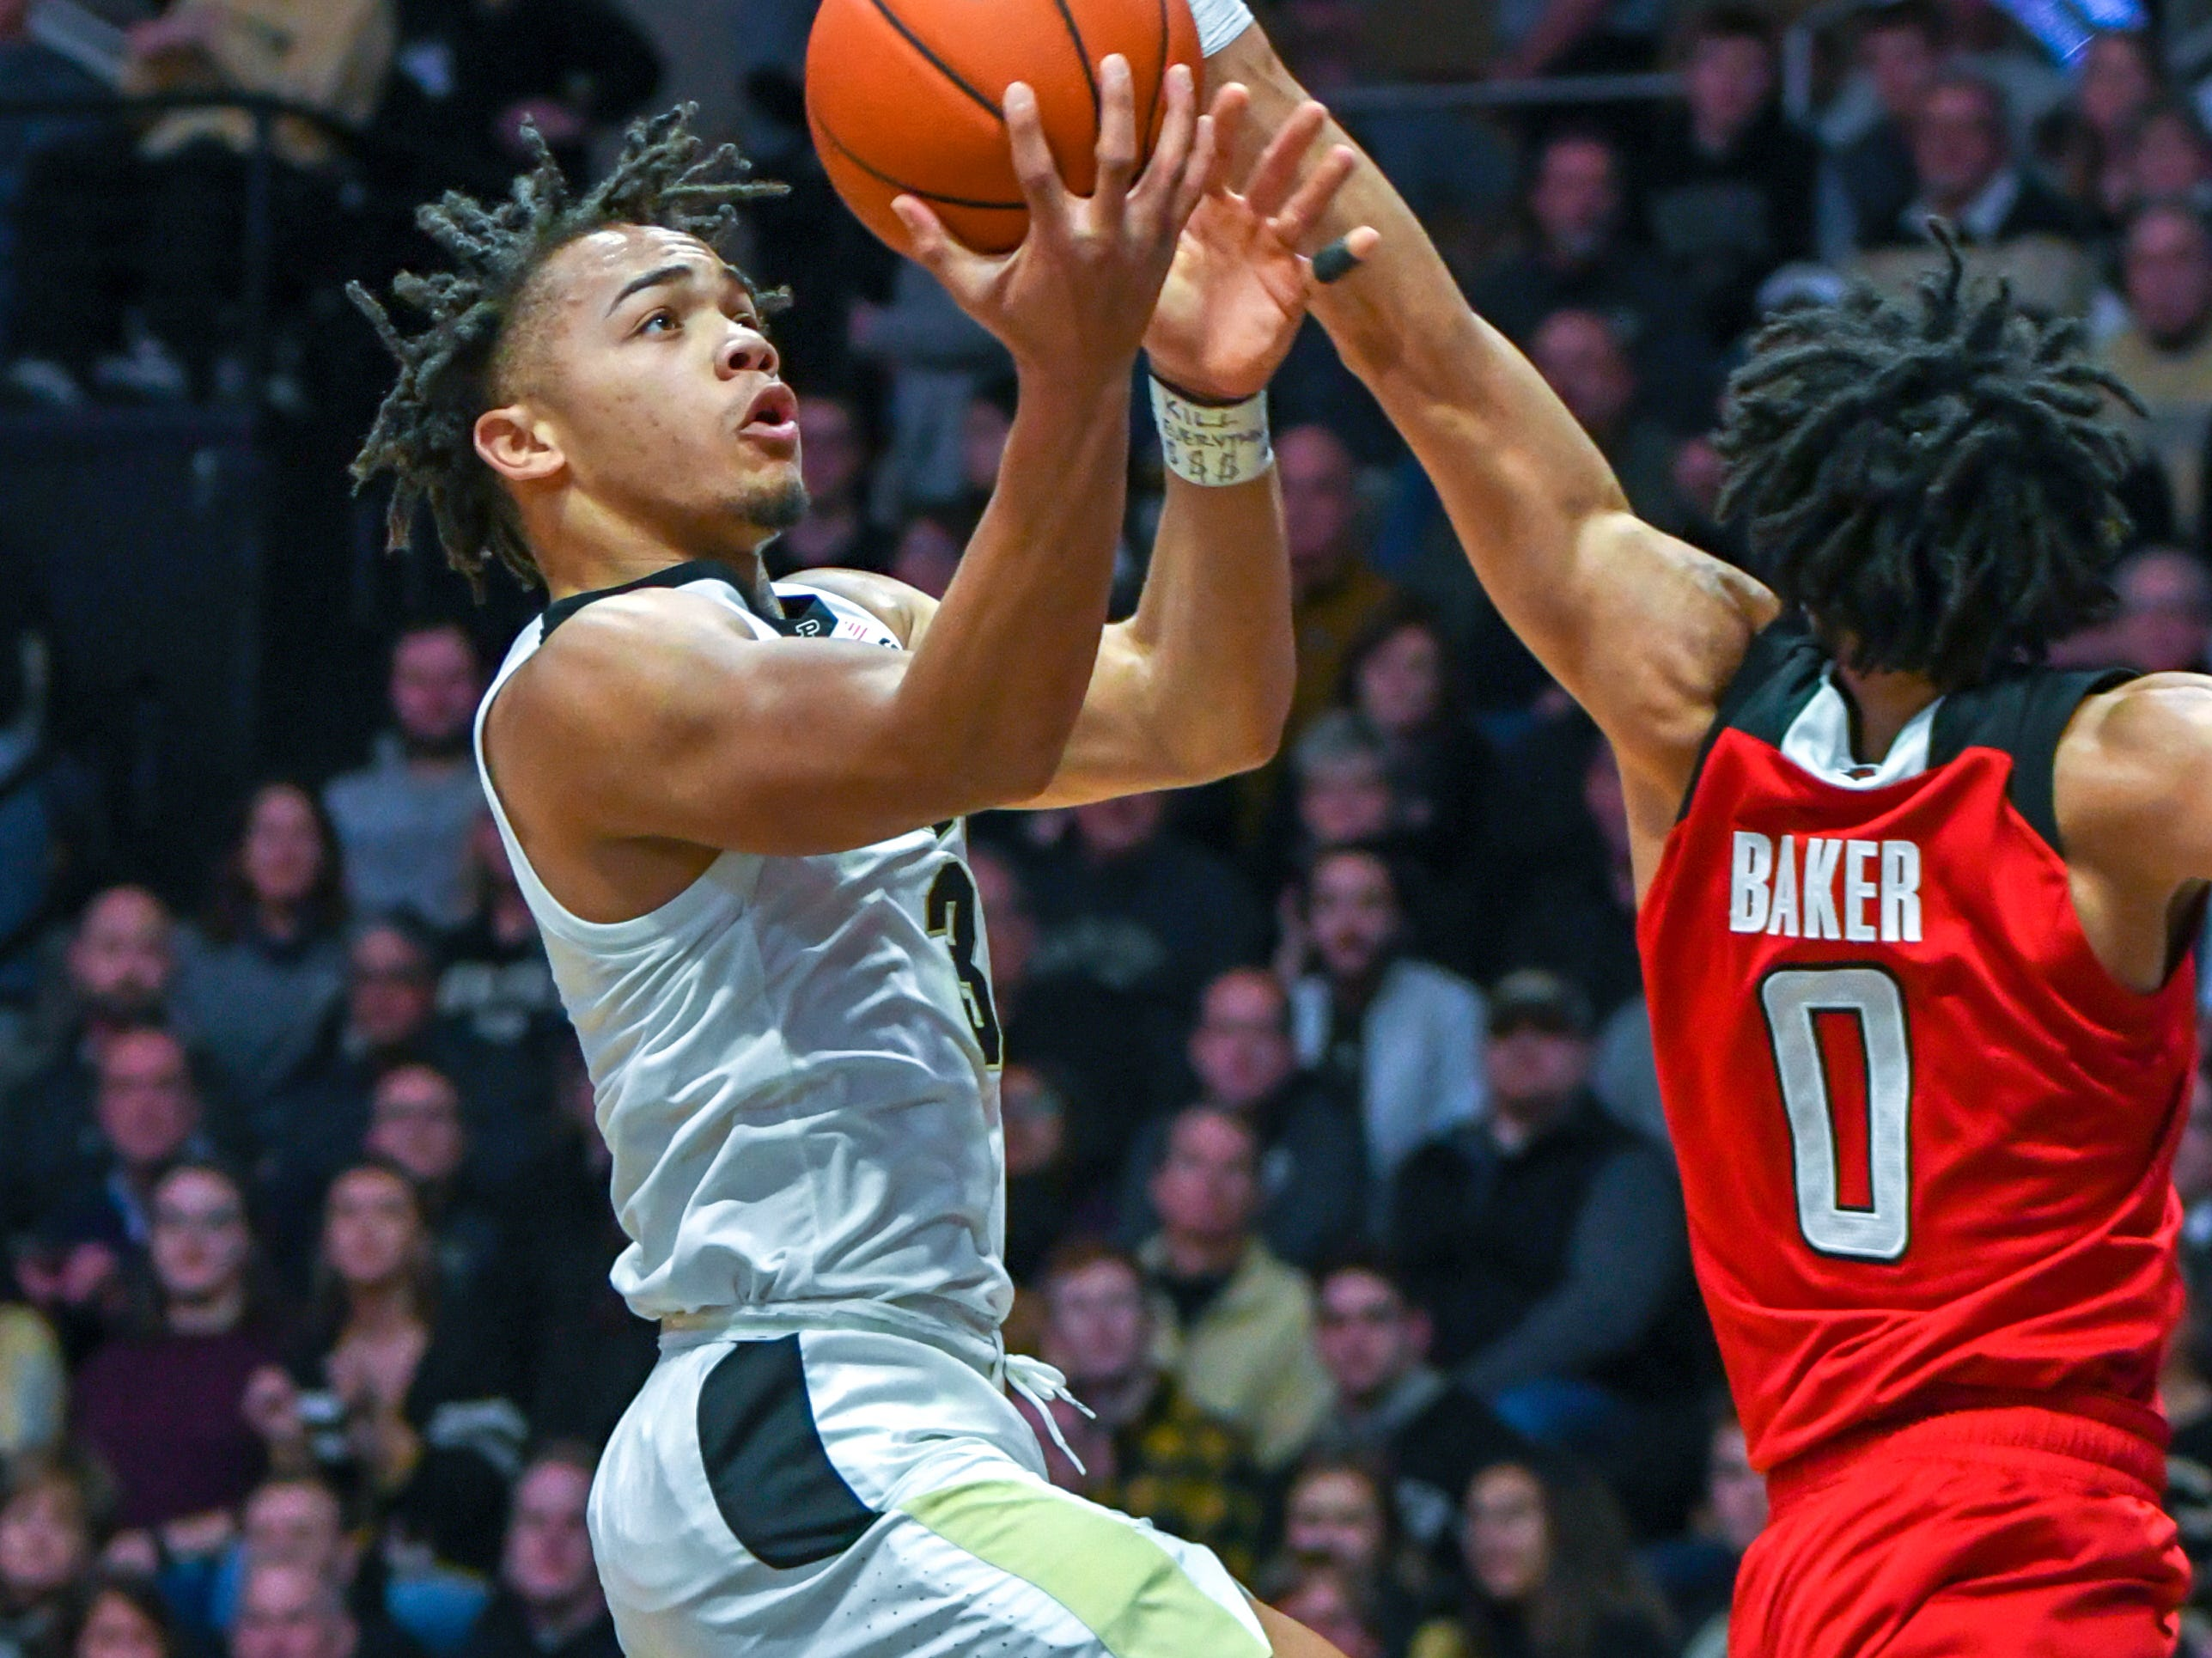 Action from Purdue's 89-54 win over Rutgers at Purdue University in West Lafayette on January 15, 2019. Carsen Edwards